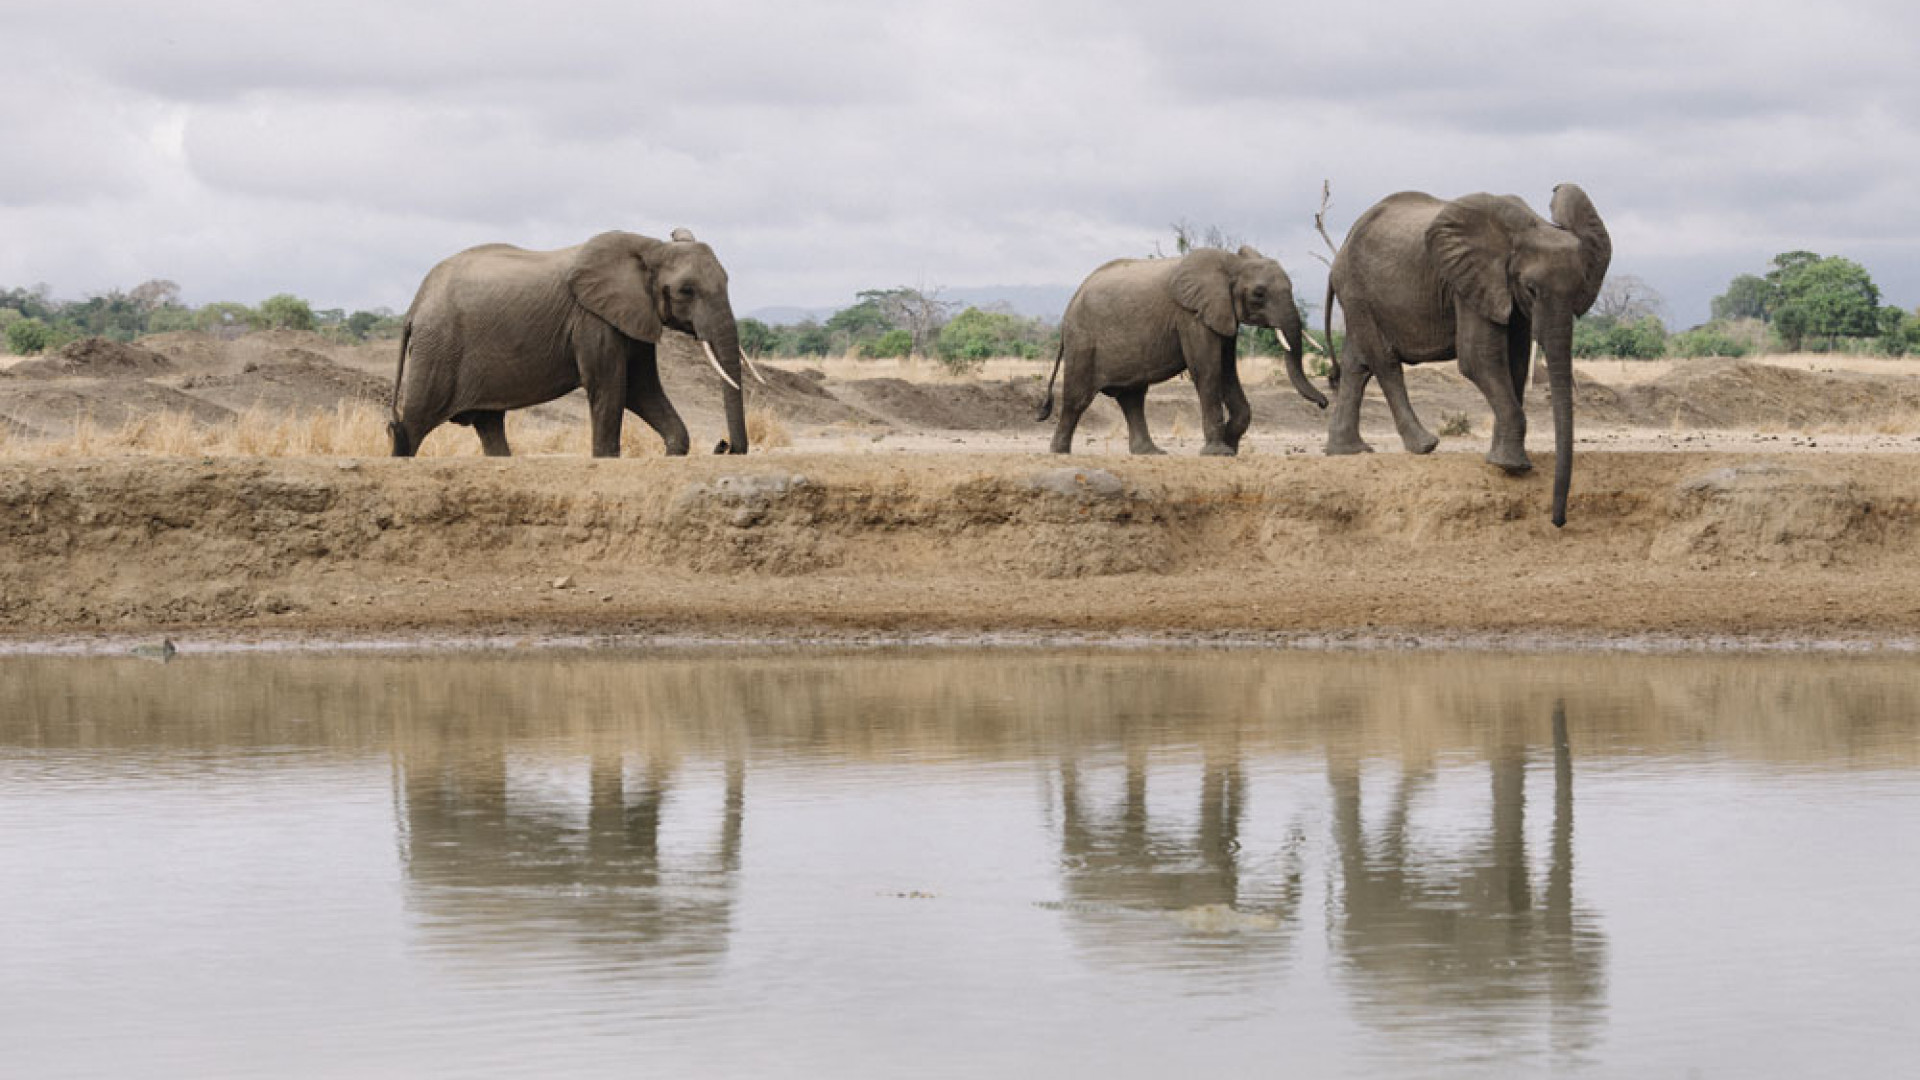 Elephants in the wild, Tanzania